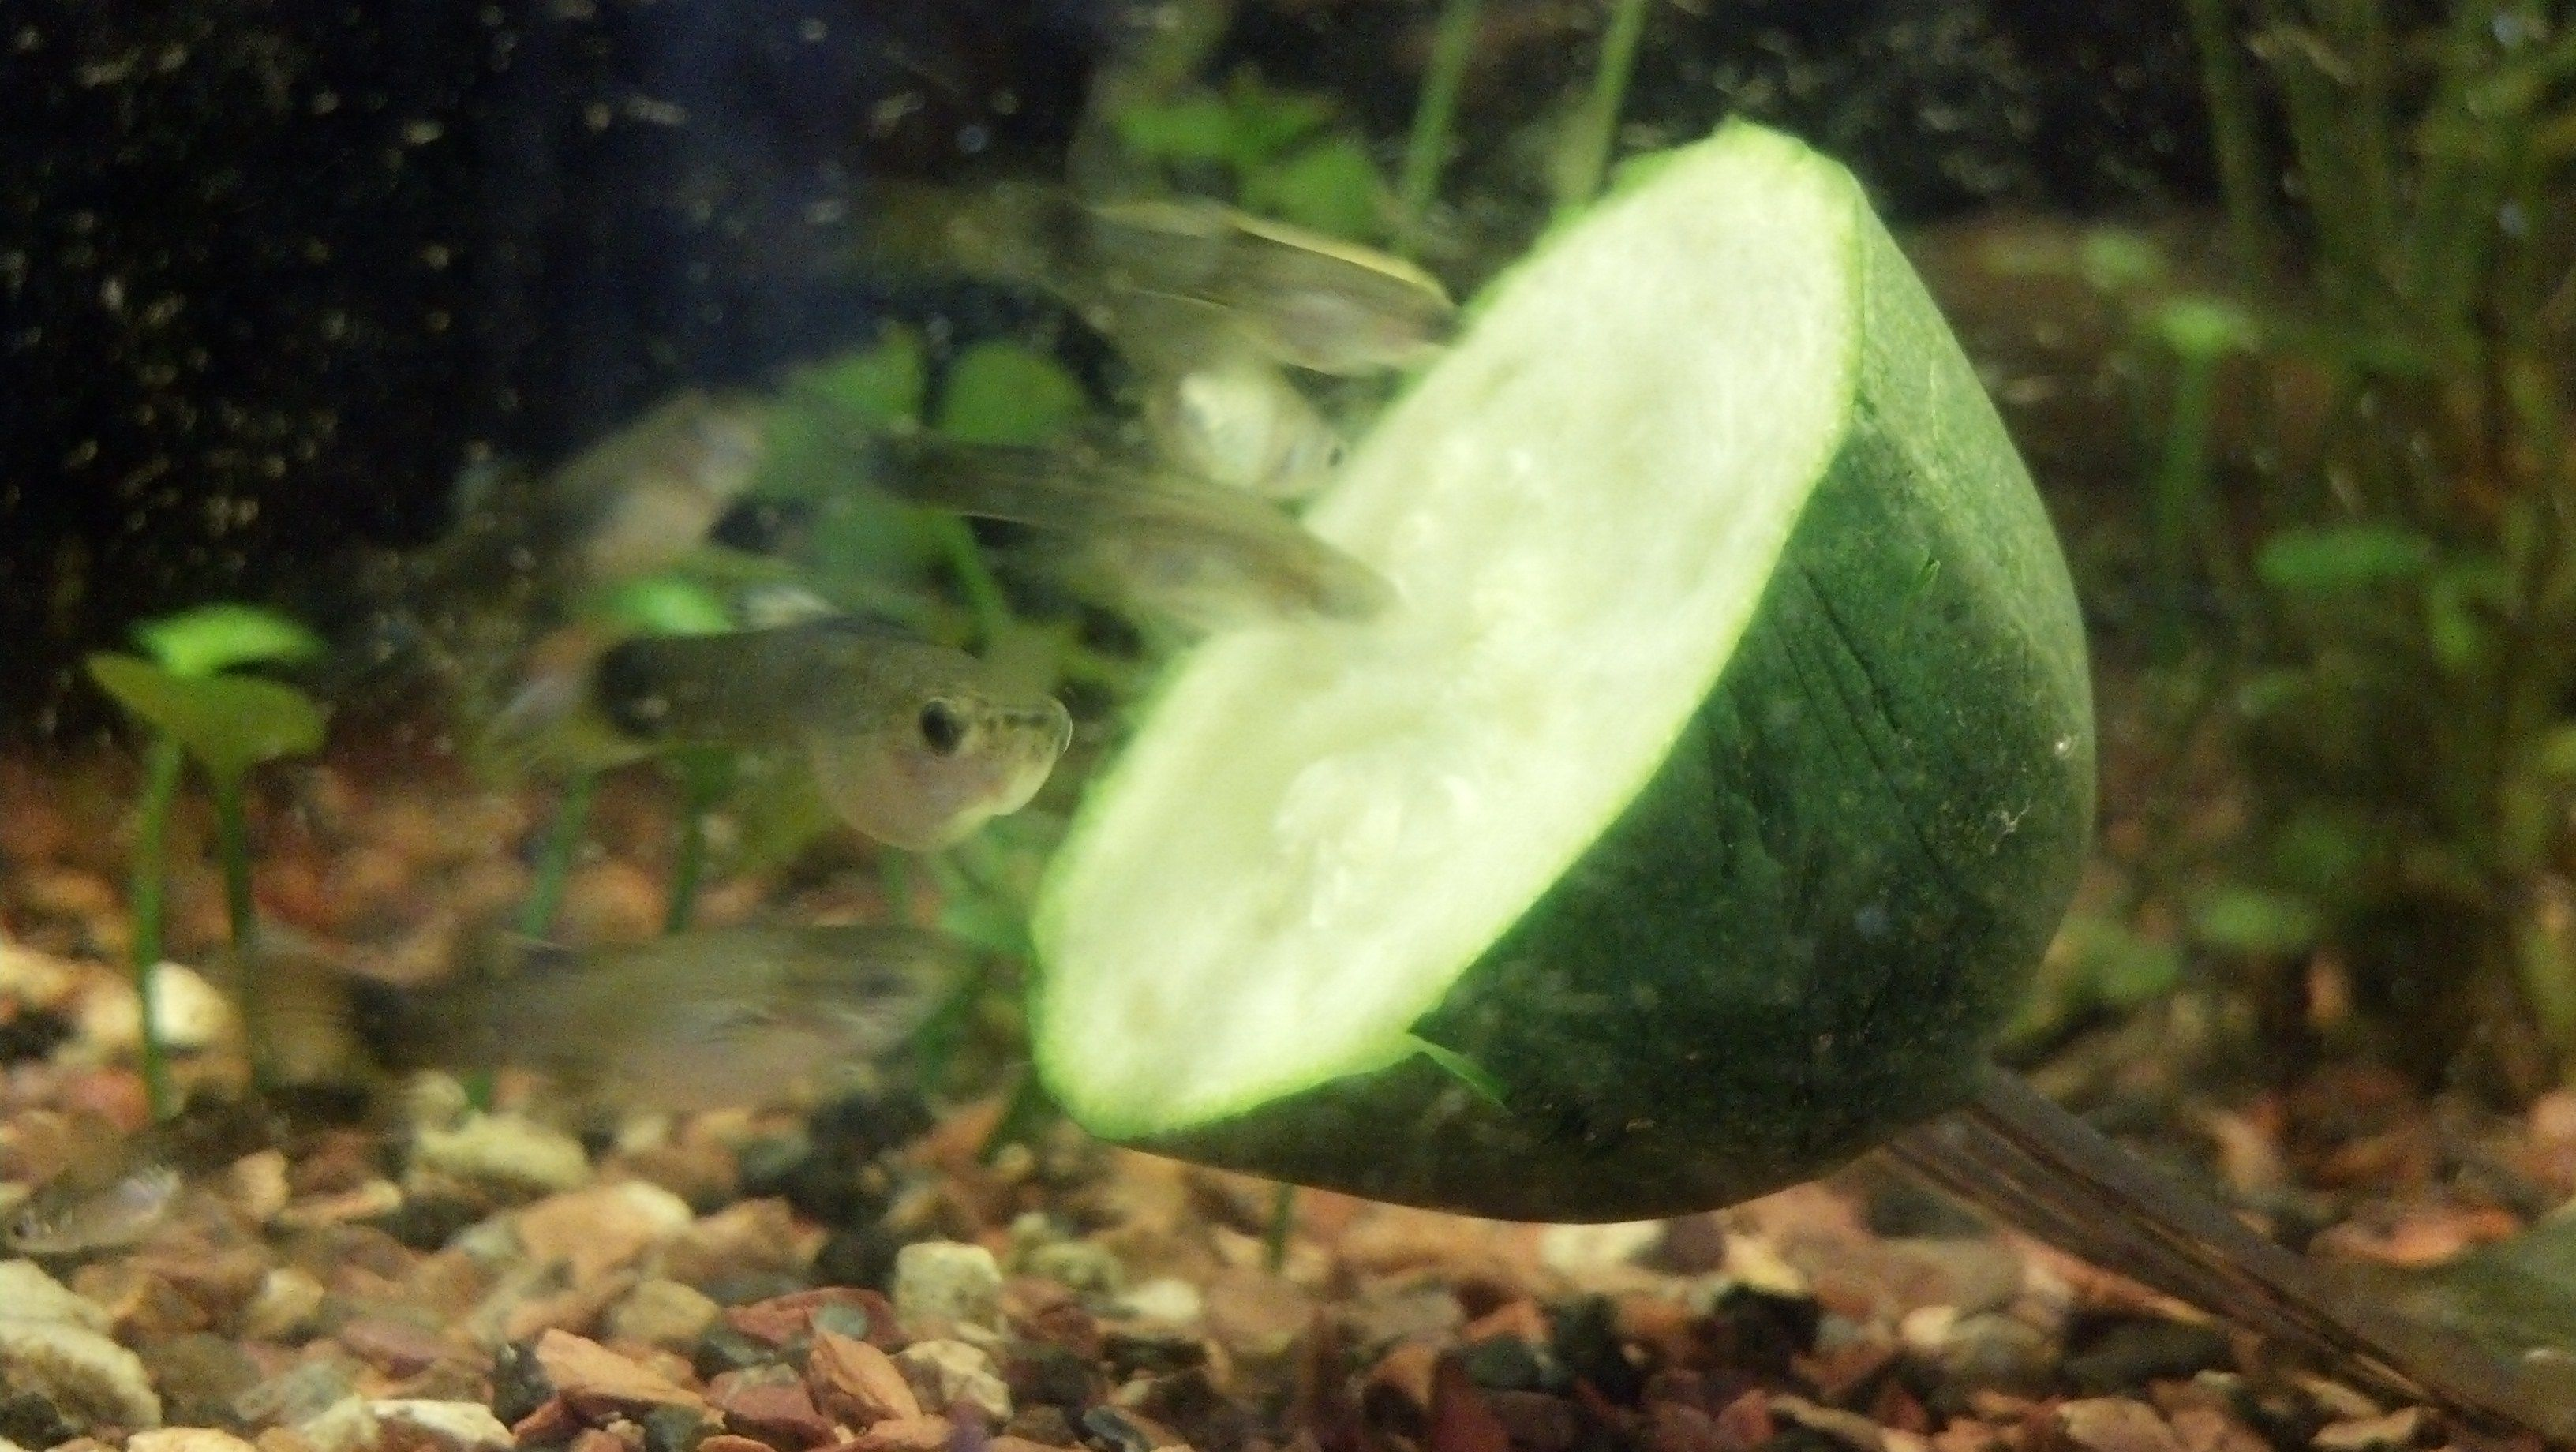 Guppy fry pigging out on zuchini fish iit pinterest for Guppy fish food